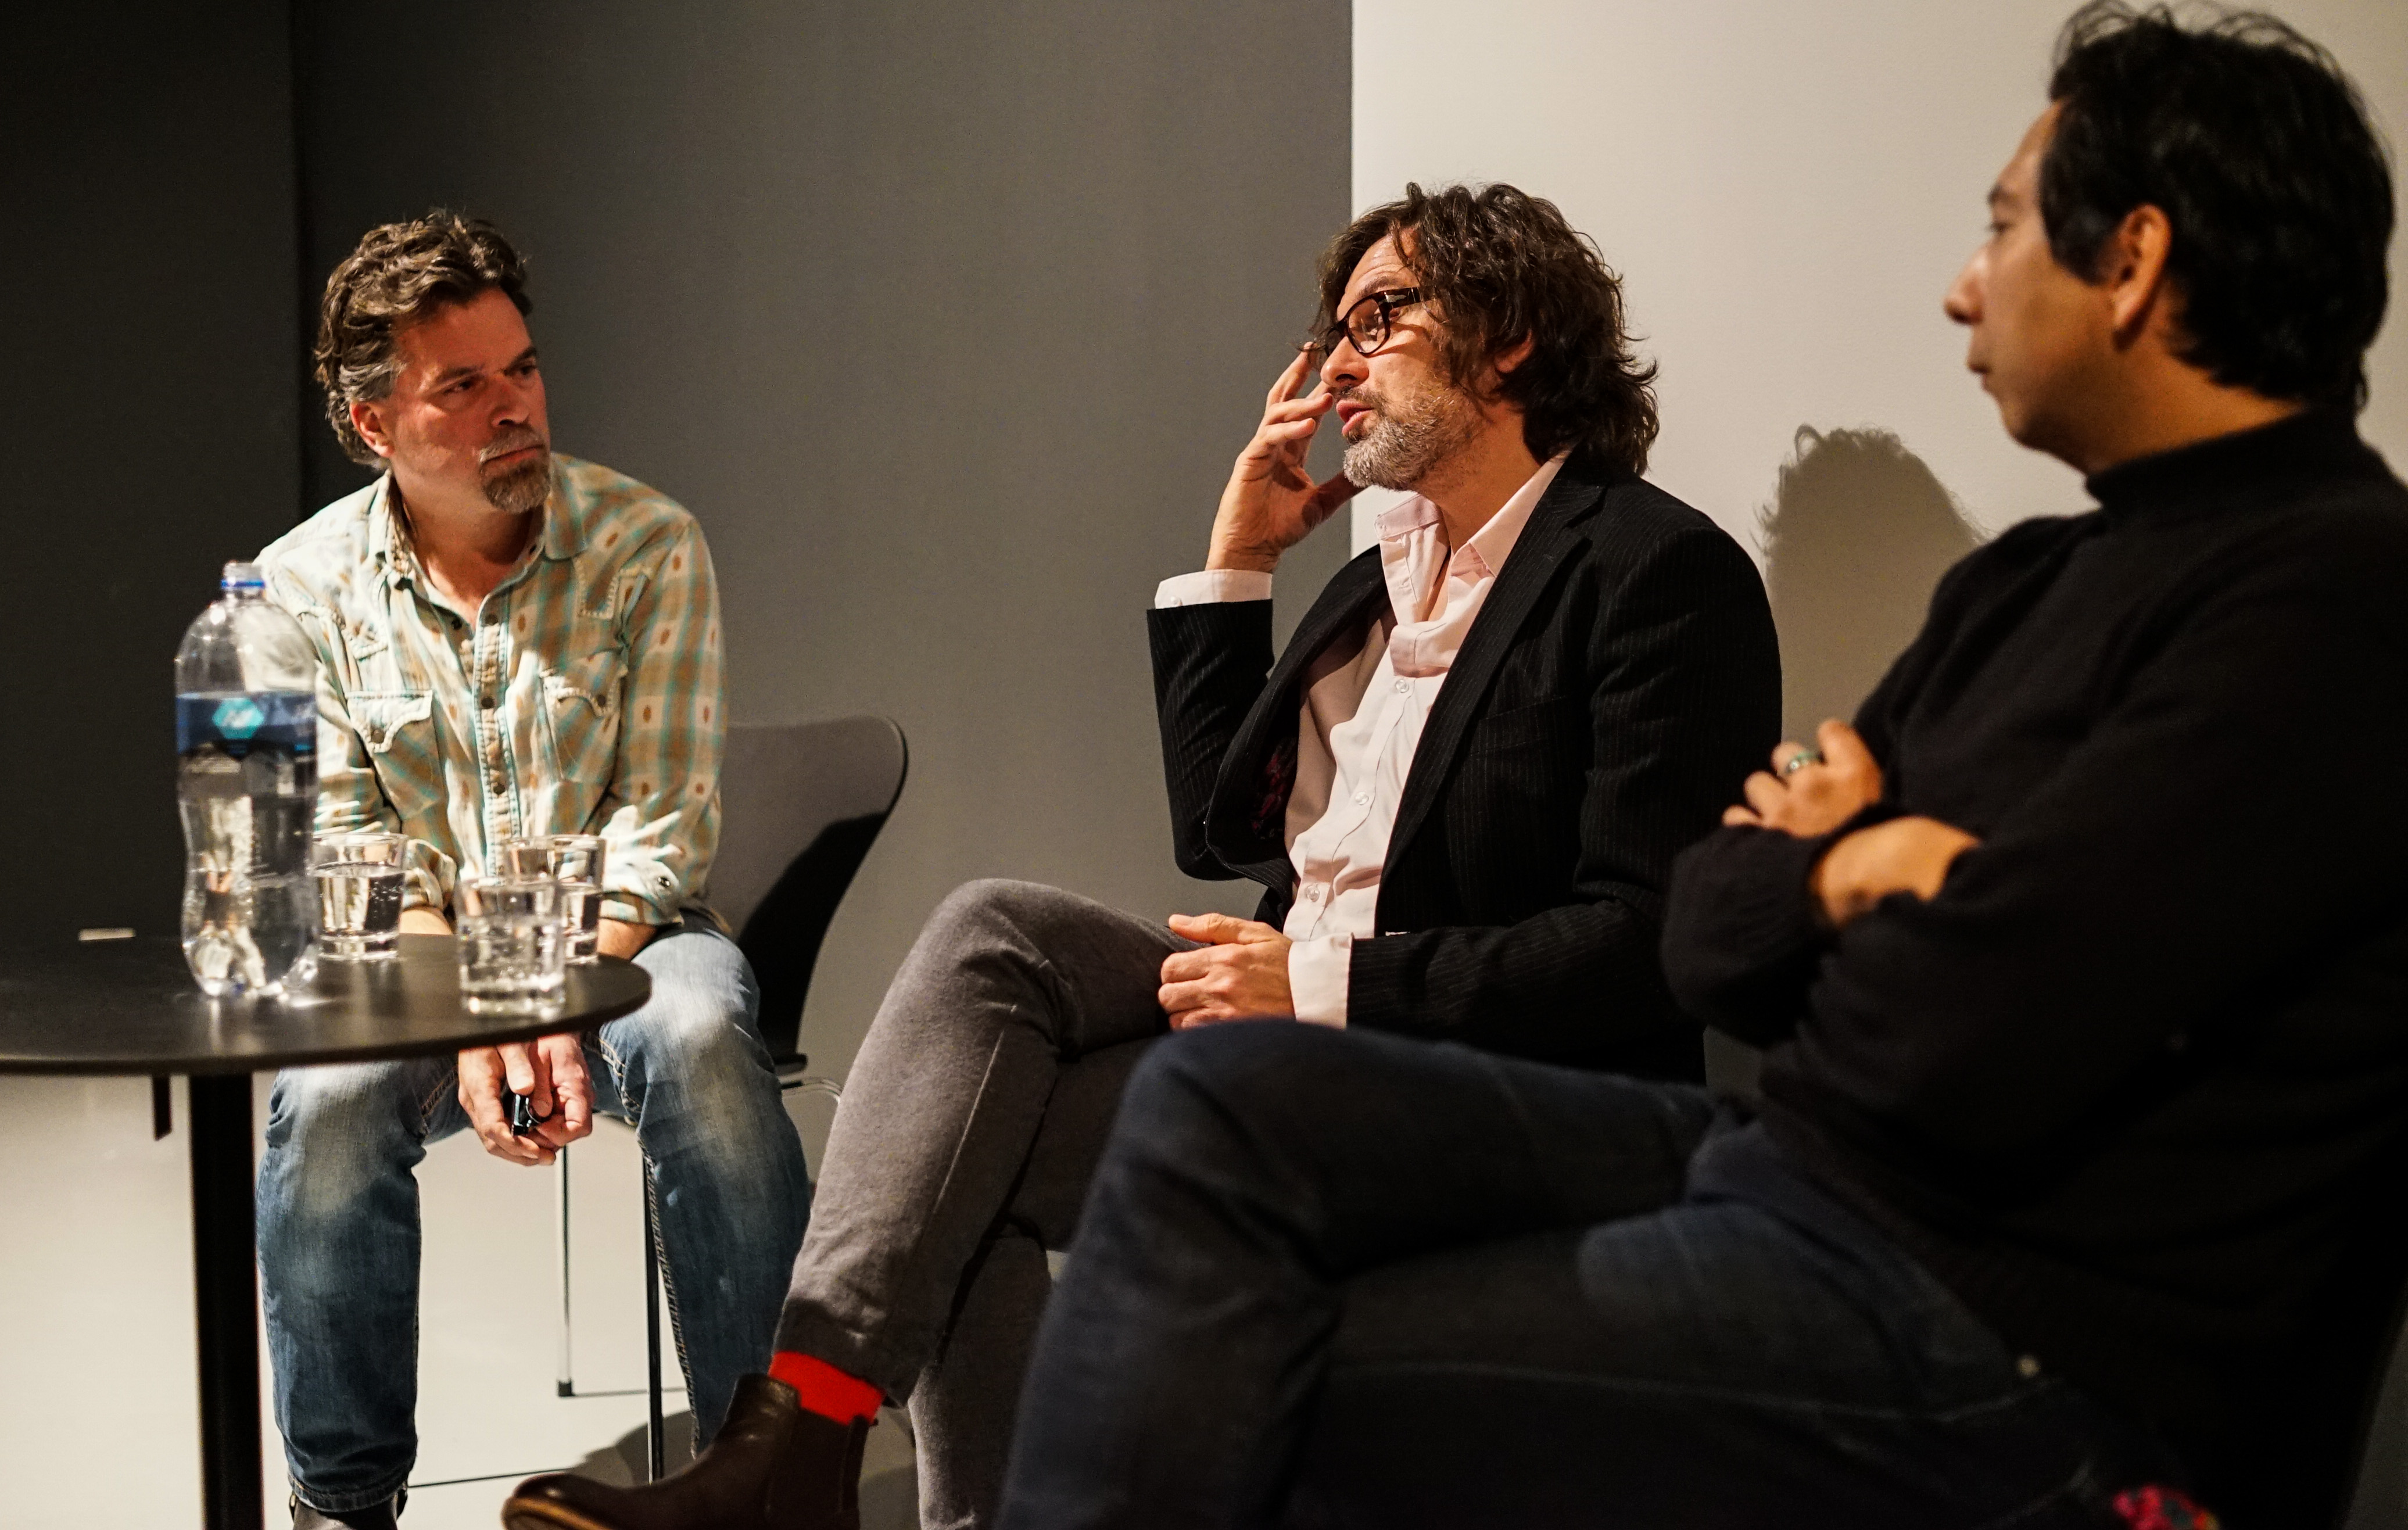 Michael Walsh, Marek Ranis and Sky Hopinka in discussion